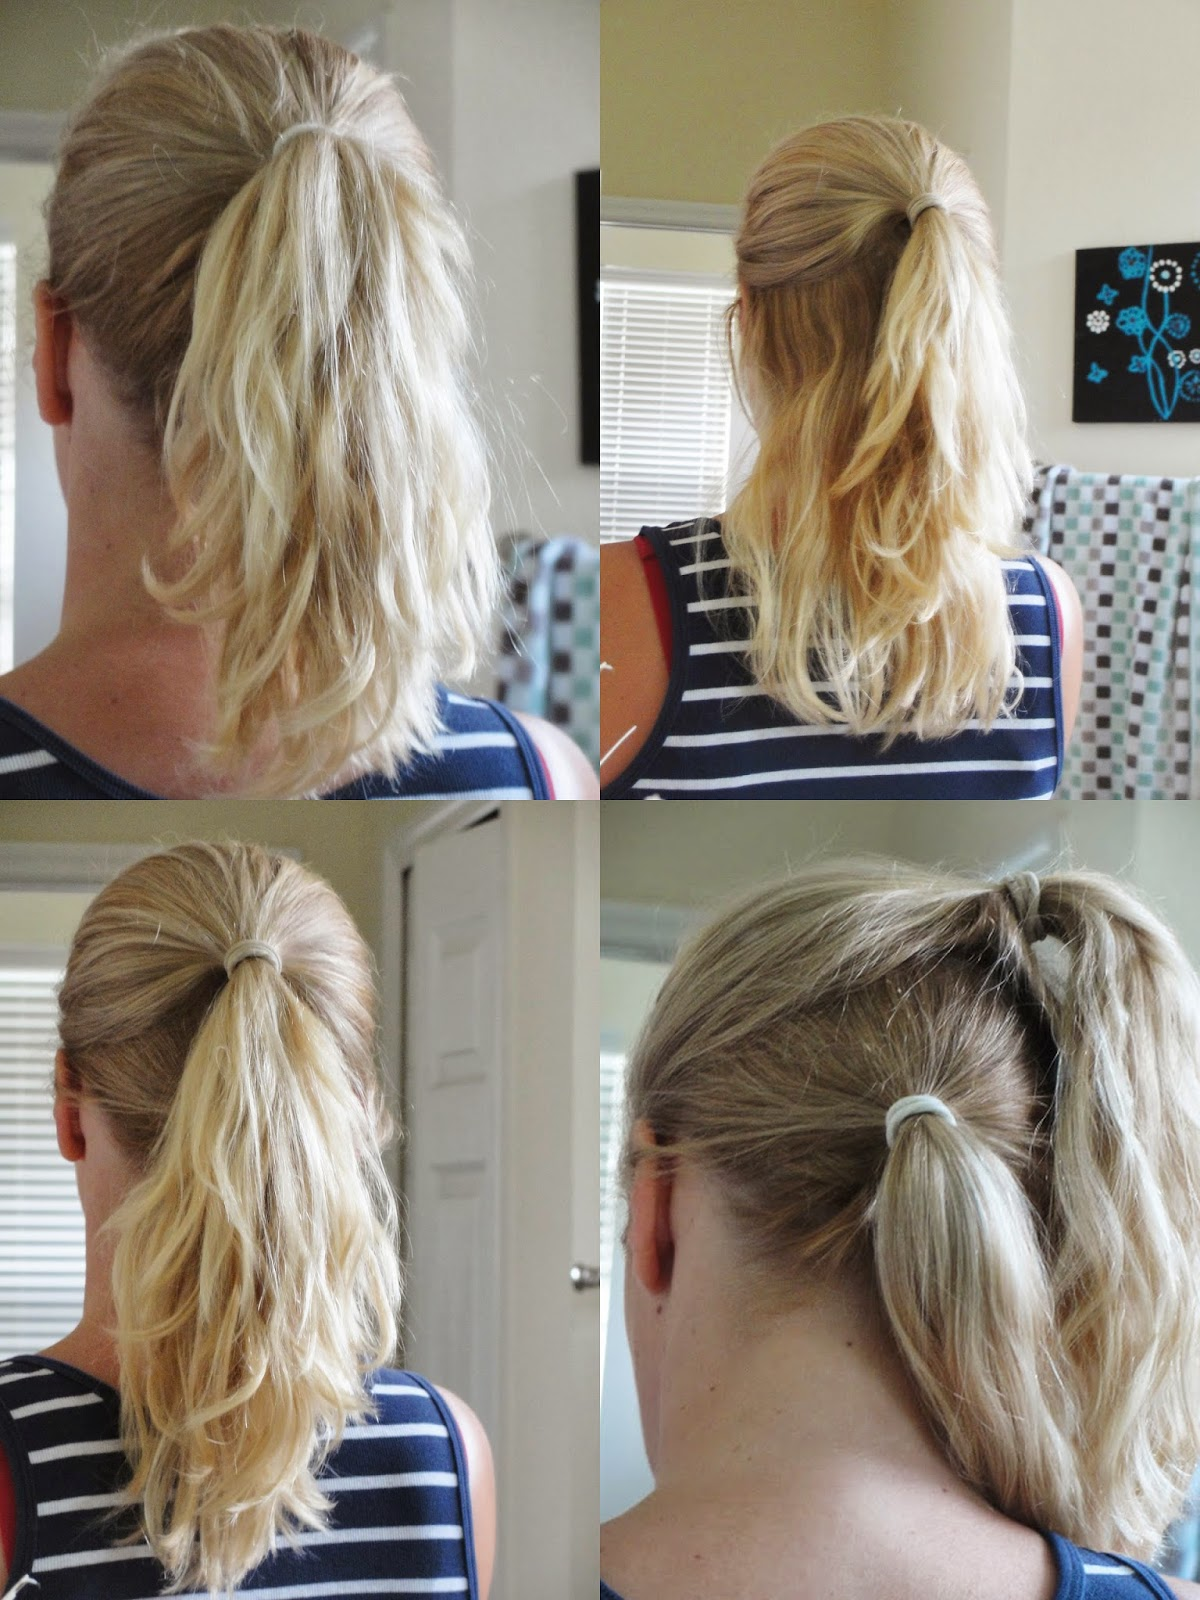 Ponytail ideas: how to make it appear longer?